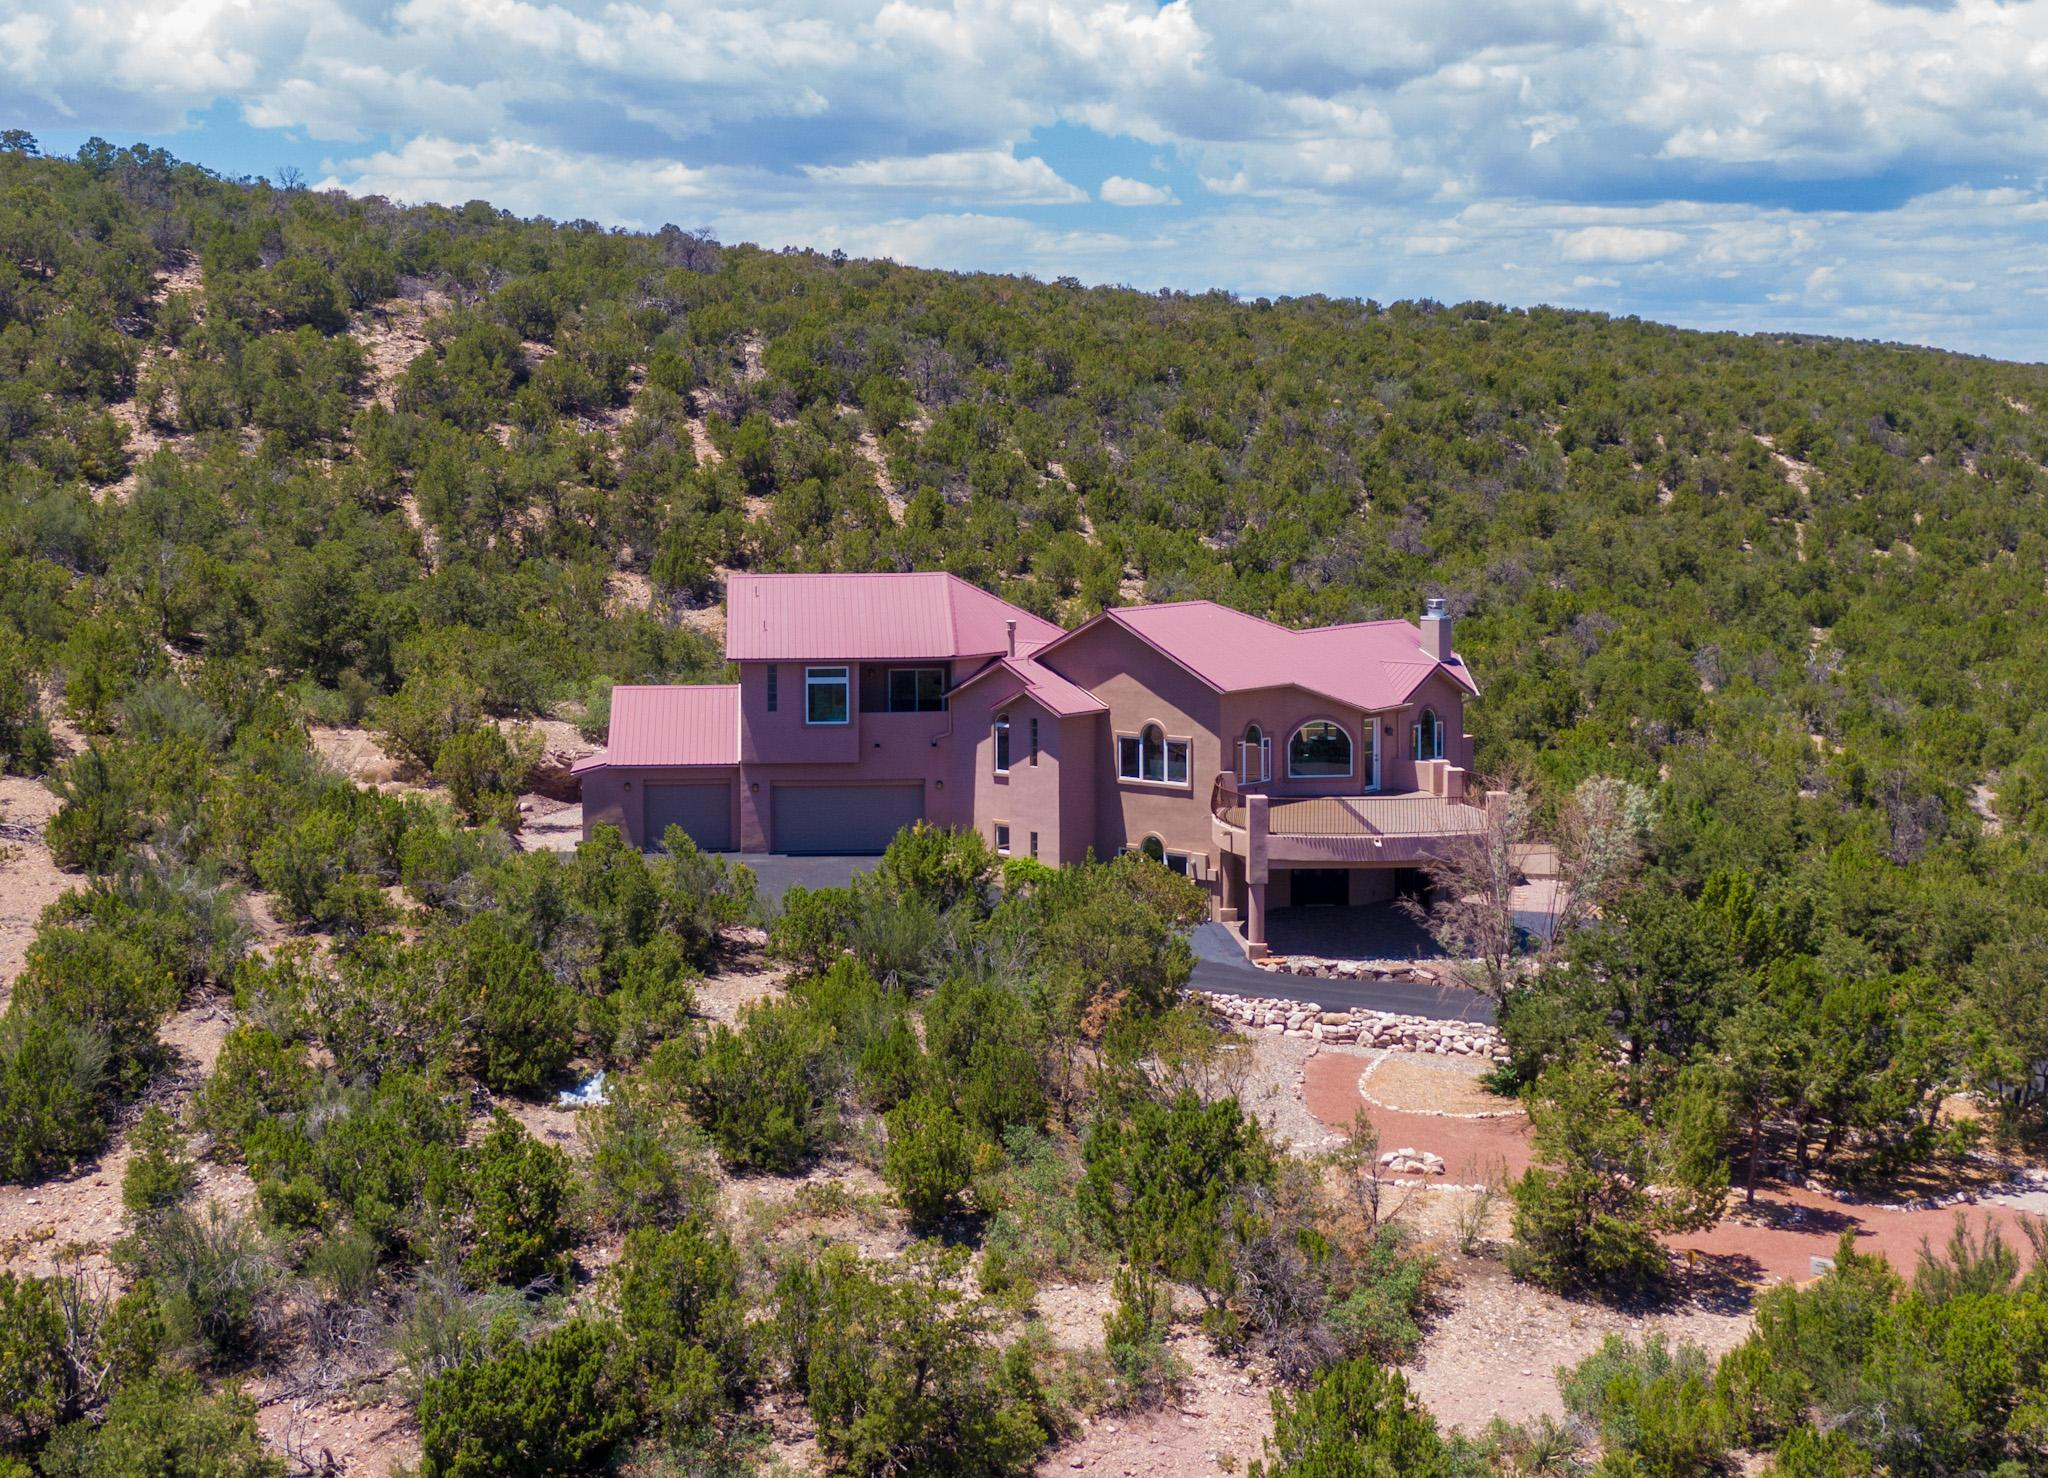 928 STATE HIGHWAY 165, PLACITAS, NM 87043